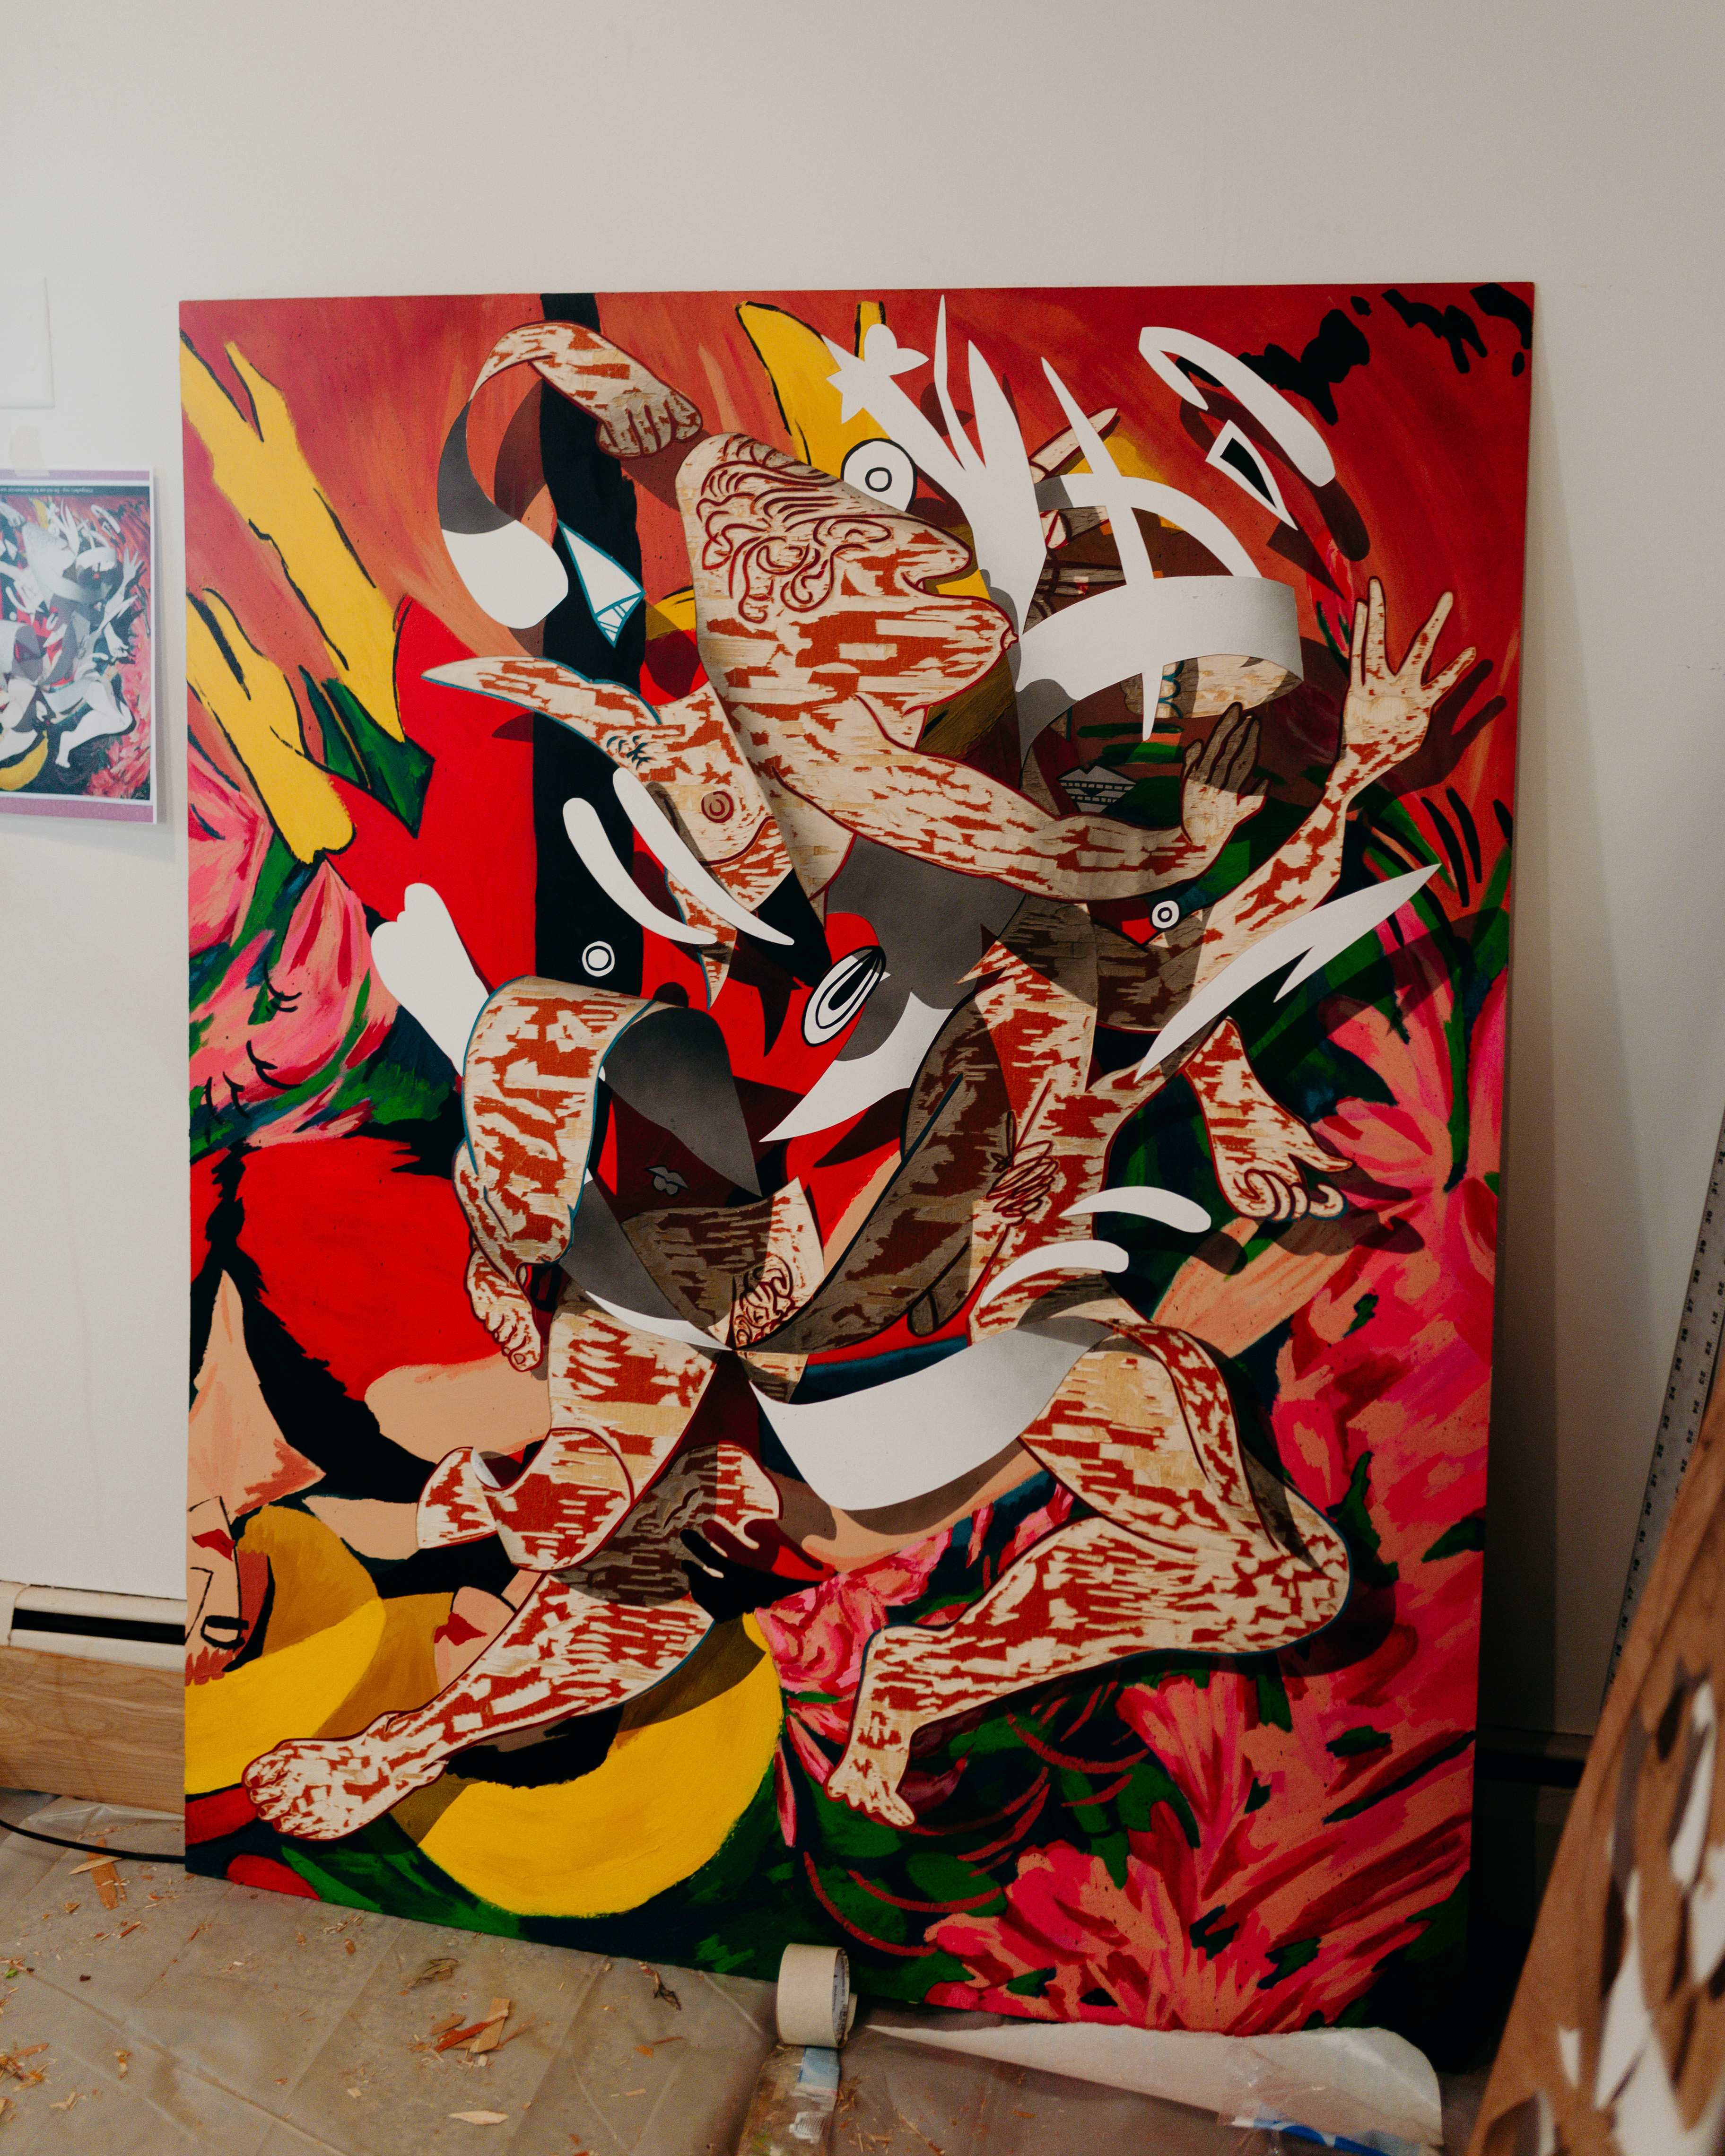 A large painting creates the illusian of paper swirling above the surface of the canvas.